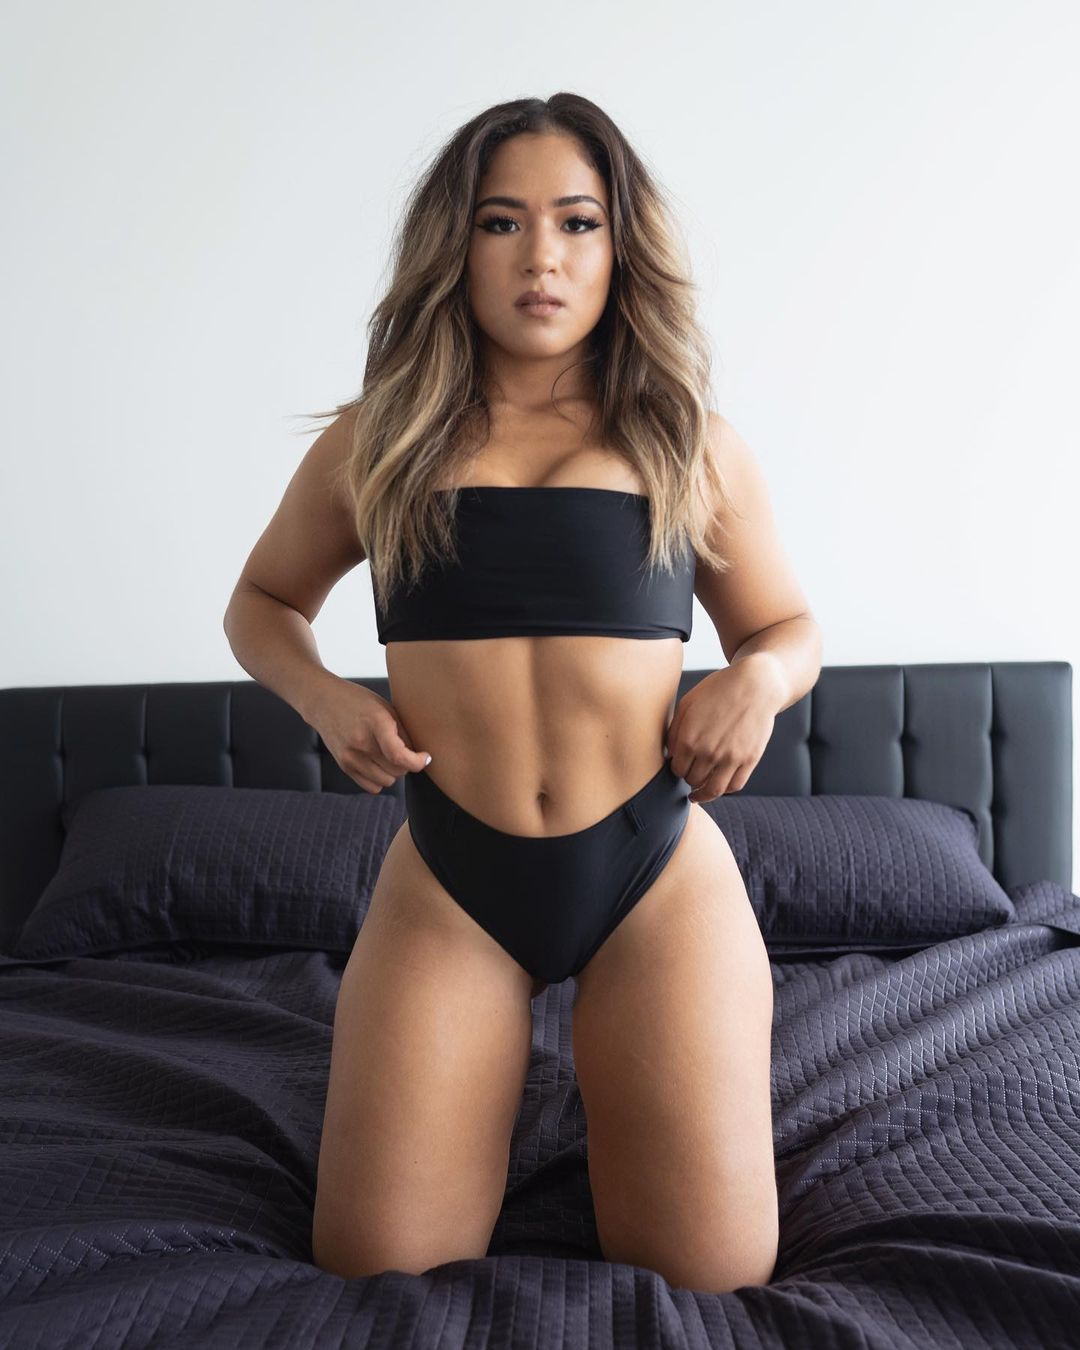 Twerking MMA star Valerie Loureda reveals Hollywood is calling despite having been blasted by rival for 'selling sex'